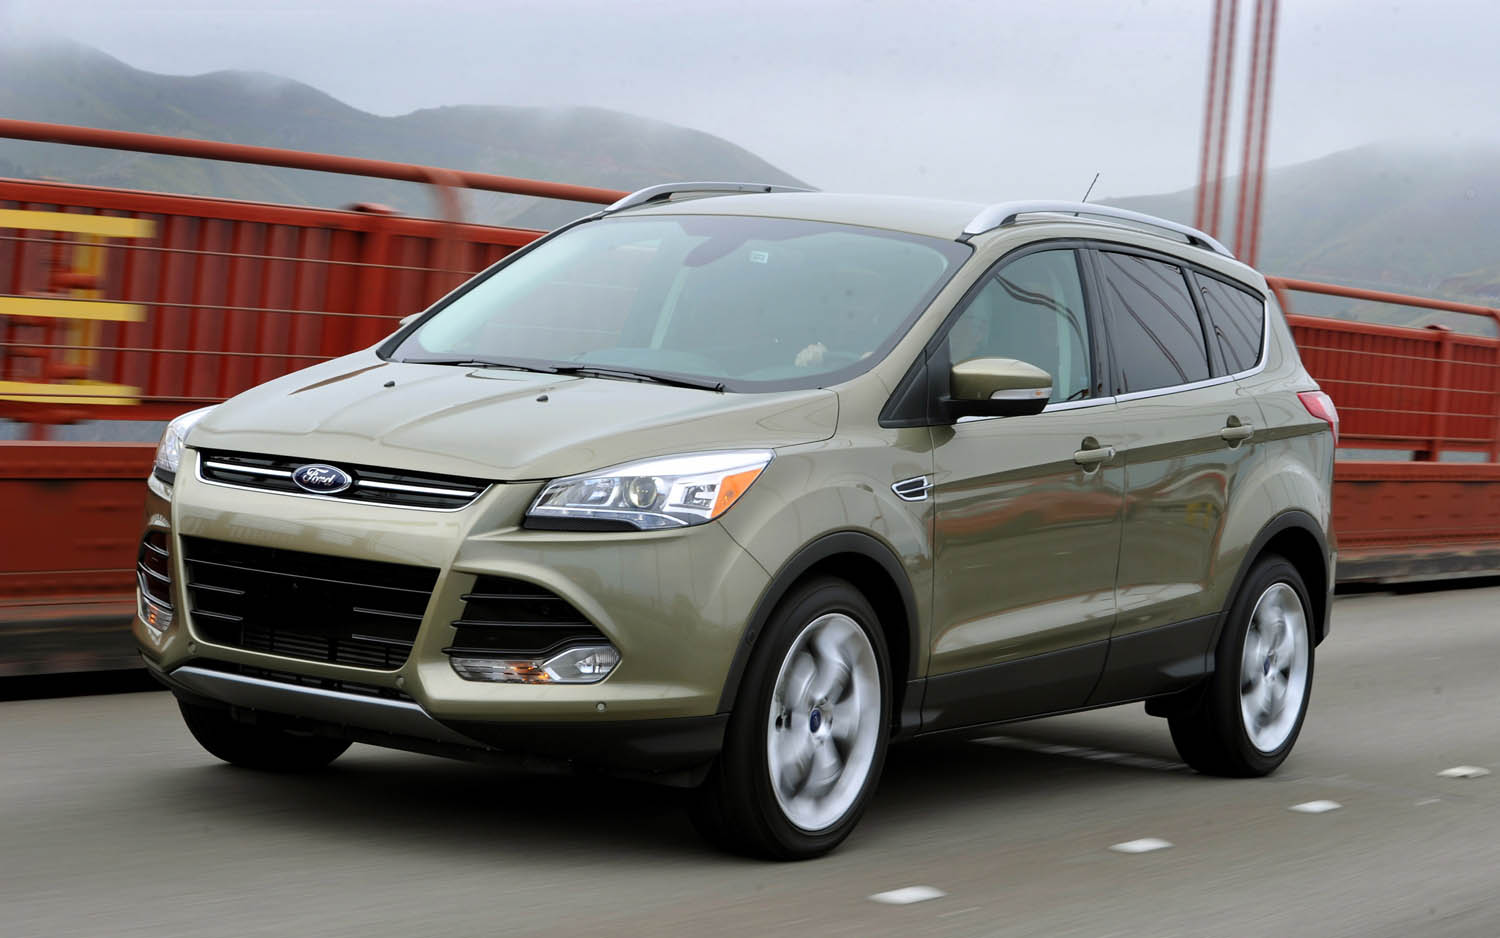 World of cars ford escape information and reviews for Ford edge vs honda crv